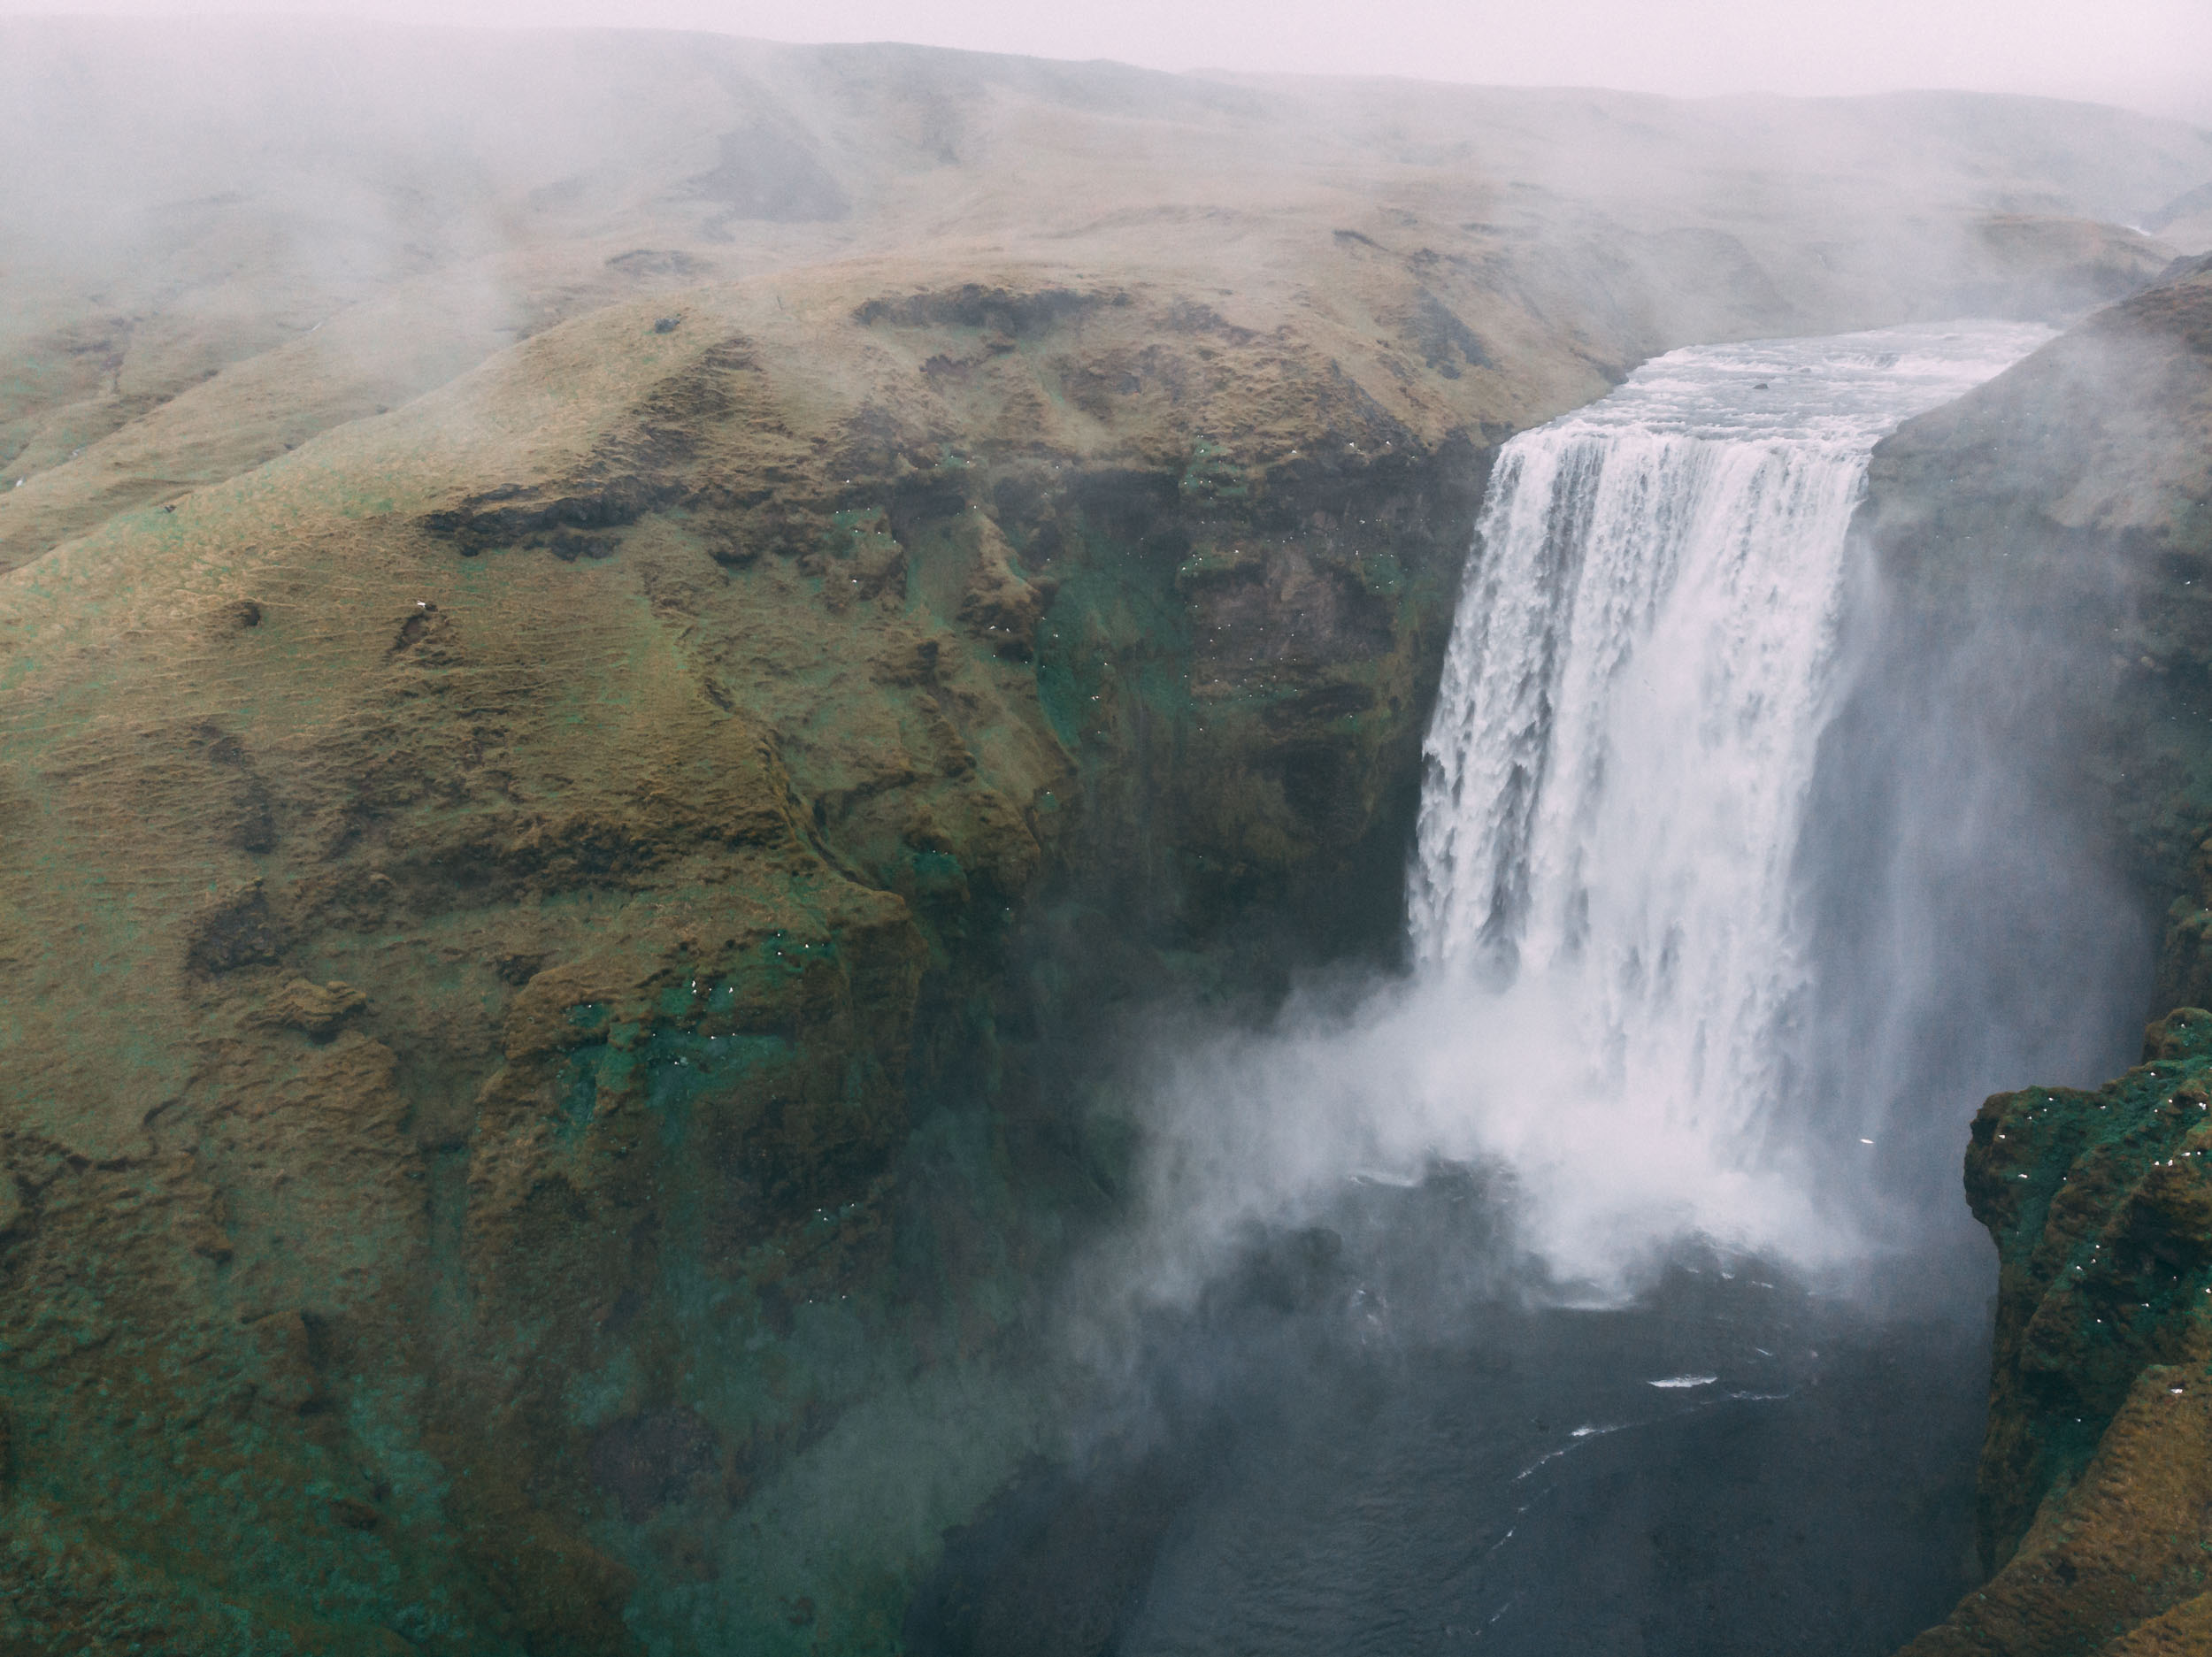 risk - Storm on its way and the rain is picking up, I launch my drone into the air amongst the mist of the waterfall, hoping it won't get plucked from the air by the rain and the wind as I rise above the waterfall.This photo taught me it takes risk to get the images we want.